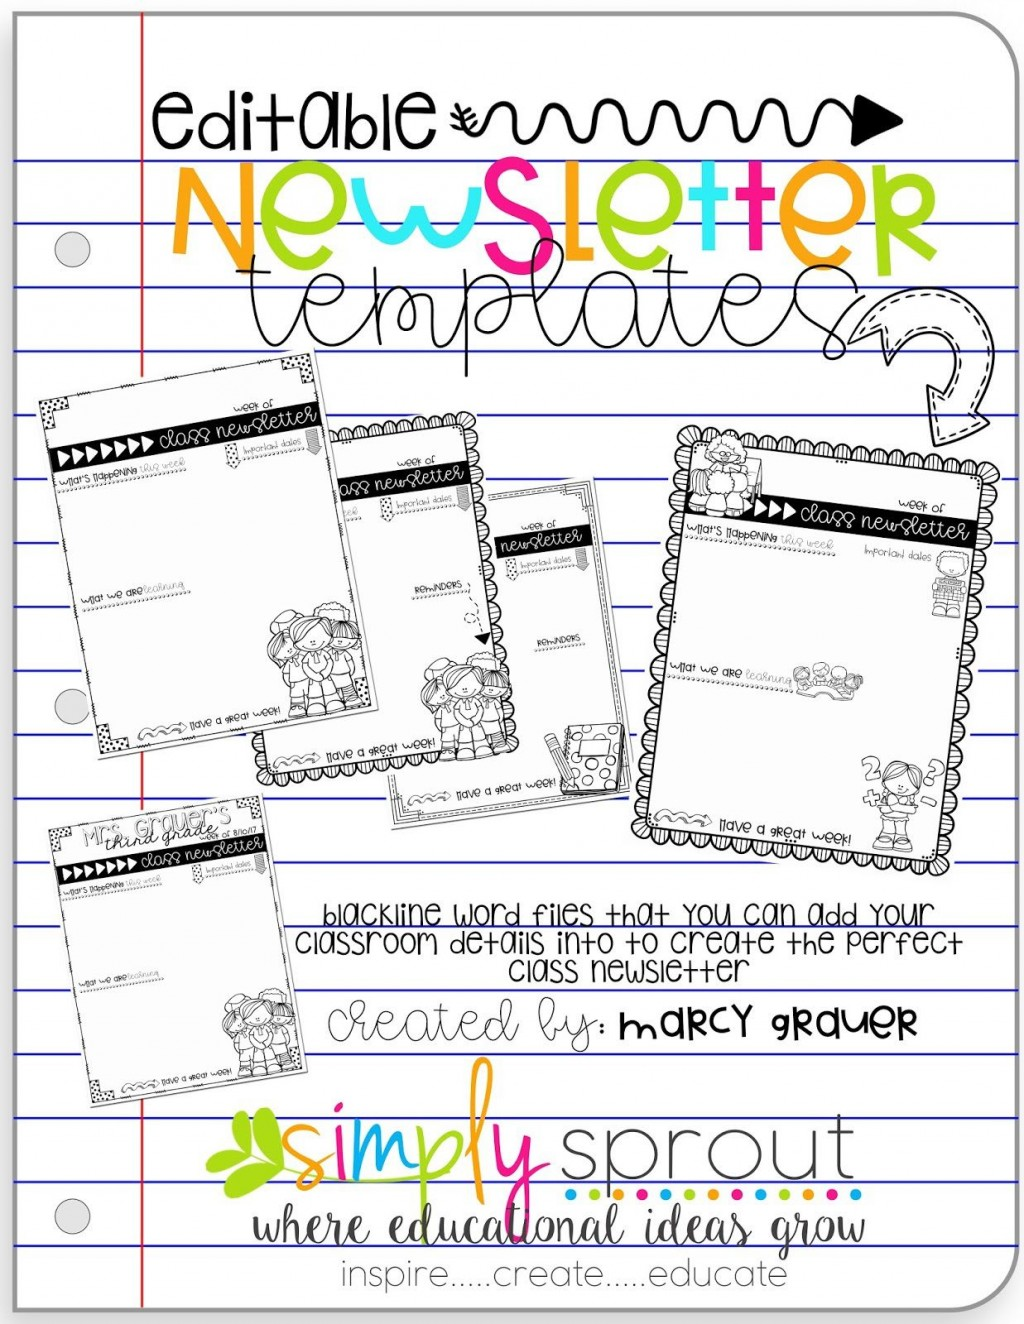 009 Astounding School Newsletter Template Free Image  Publisher Editable CounselorLarge